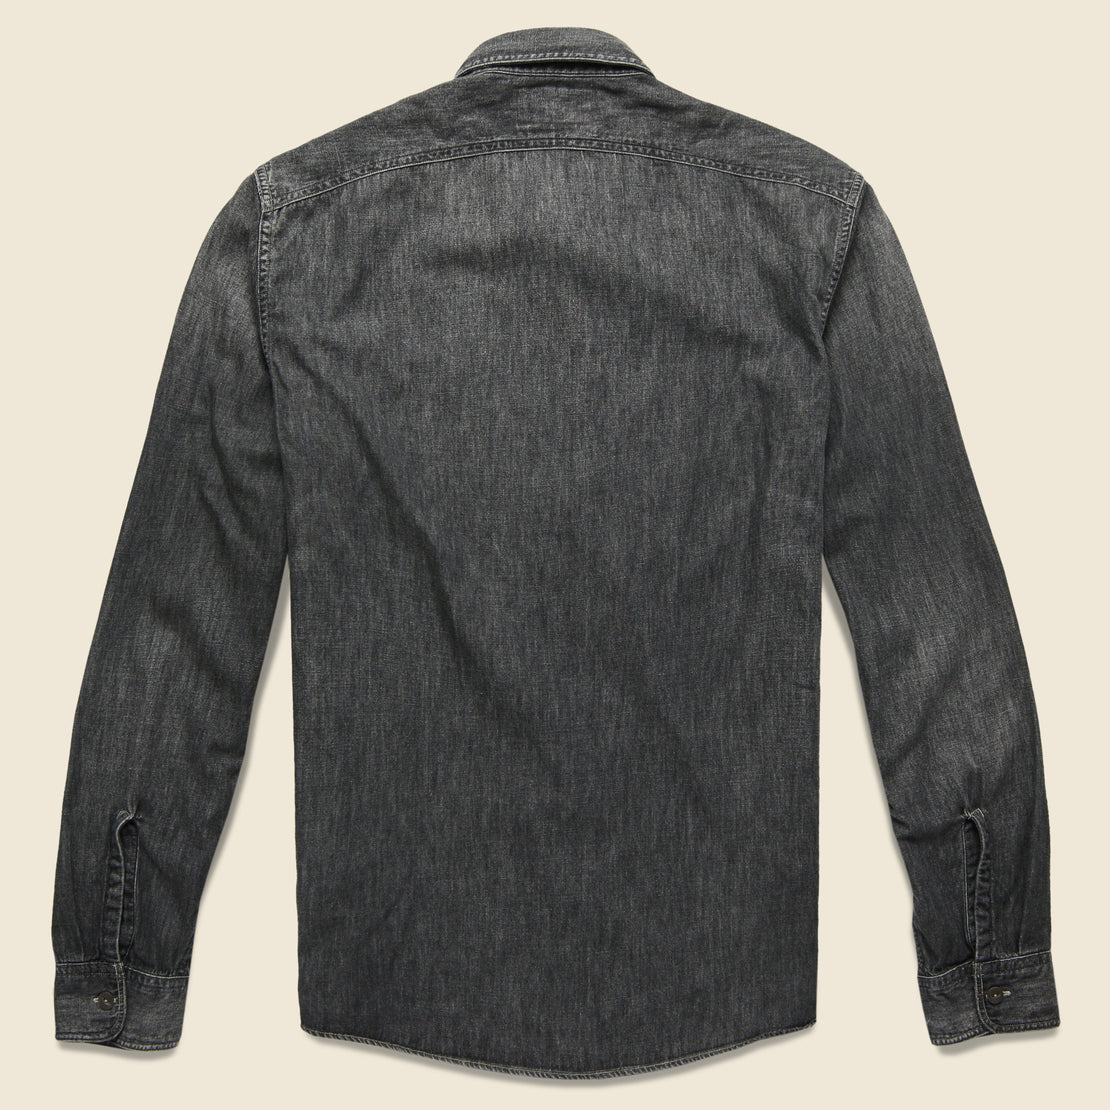 Harvest Denim Workshirt - Black